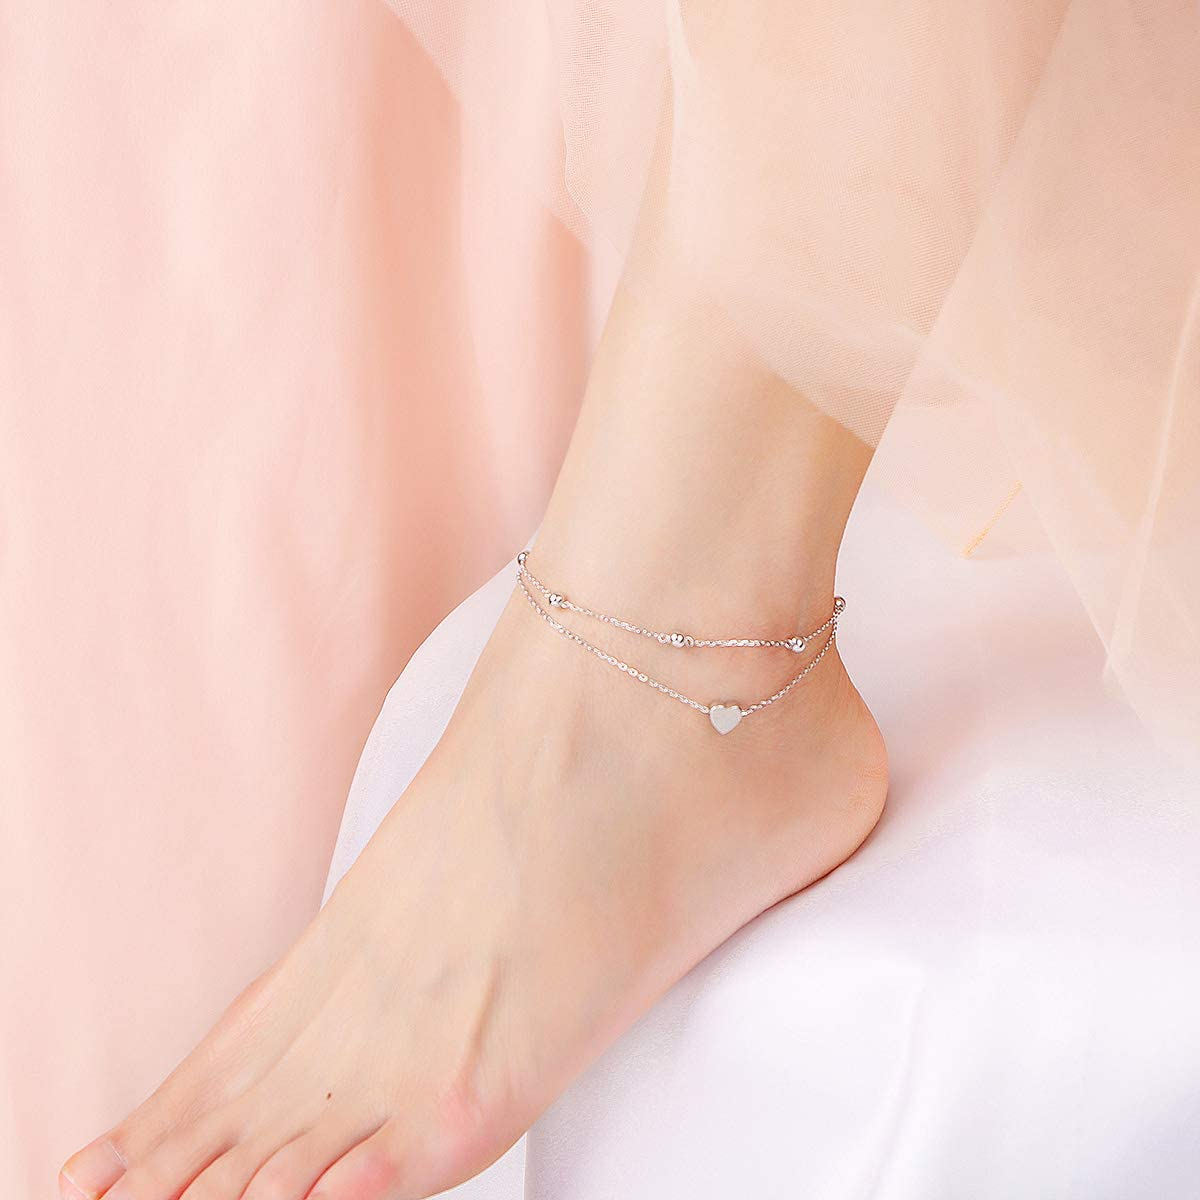 Heart Initial Ankle Bracelets for Women Real S925 Sterling Silver Adjustable Letter Initial Heart Charm Anklets Beach Jewelry